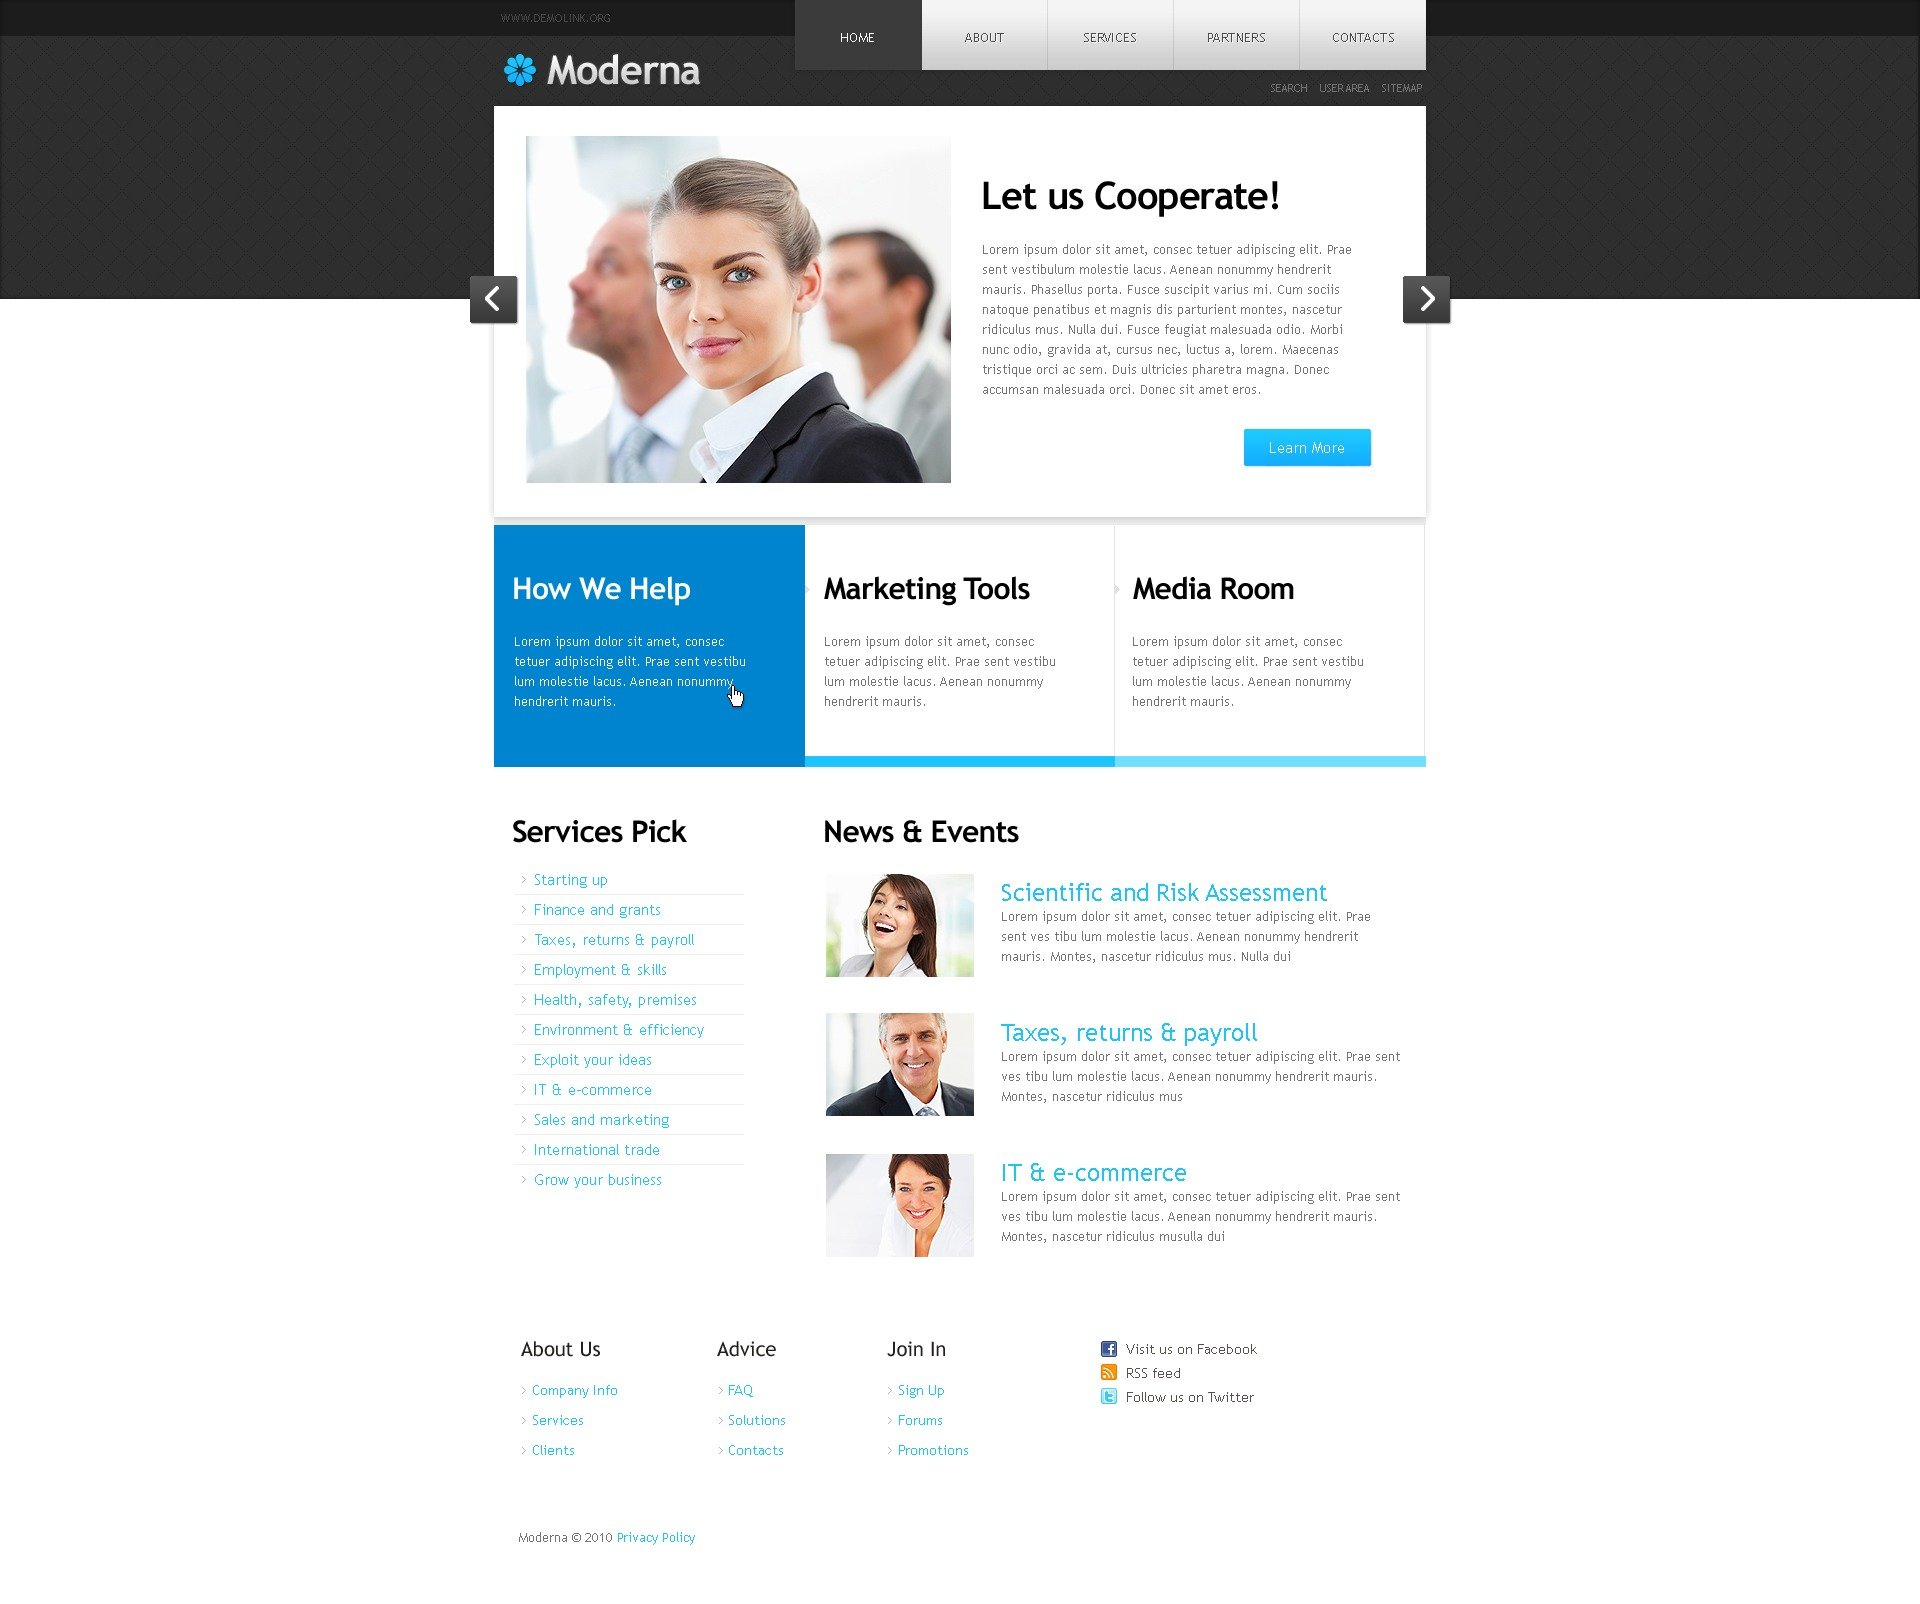 The Moderna Business Company PSD Design 54380, one of the best PSD templates of its kind (business, wide, jquery), also known as moderna business company PSD template, corporate solutions PSD template, innovations PSD template, contacts PSD template, service PSD template, support PSD template, information dealer PSD template, stocks PSD template, team PSD template, success PSD template, money PSD template, marketing PSD template, director PSD template, manager PSD template, analytics PSD template, planning PSD template, limited PSD template, office PSD template, sales and related with moderna business company, corporate solutions, innovations, contacts, service, support, information dealer, stocks, team, success, money, marketing, director, manager, analytics, planning, limited, office, sales, etc.